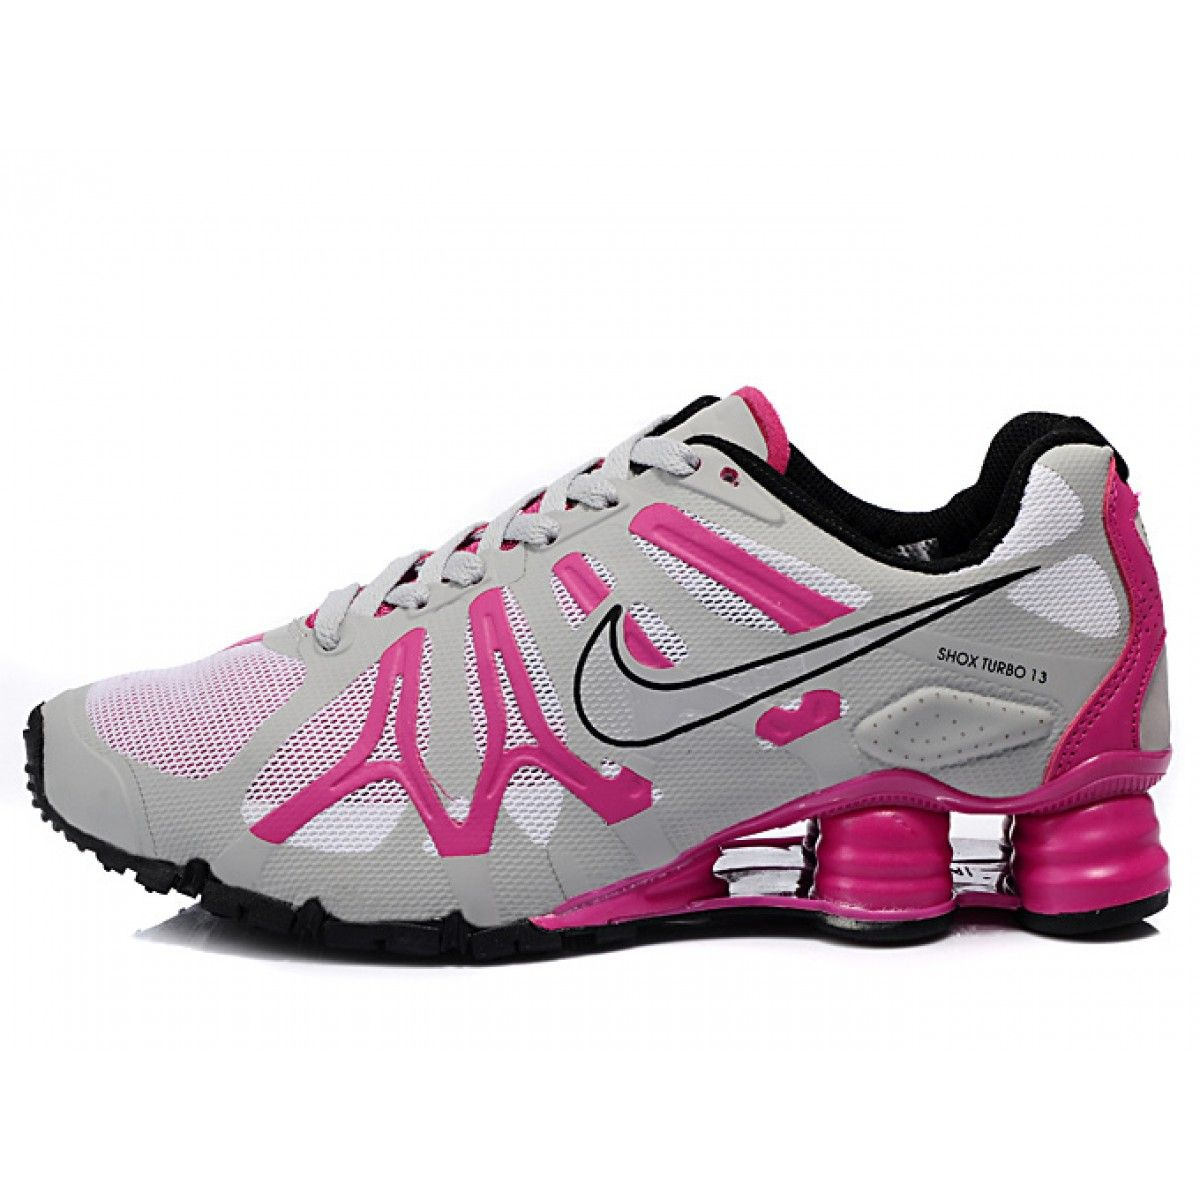 Nike Shox Shoes for Women  Home Nike Shox Turbo13 Womens Shoe Pink White